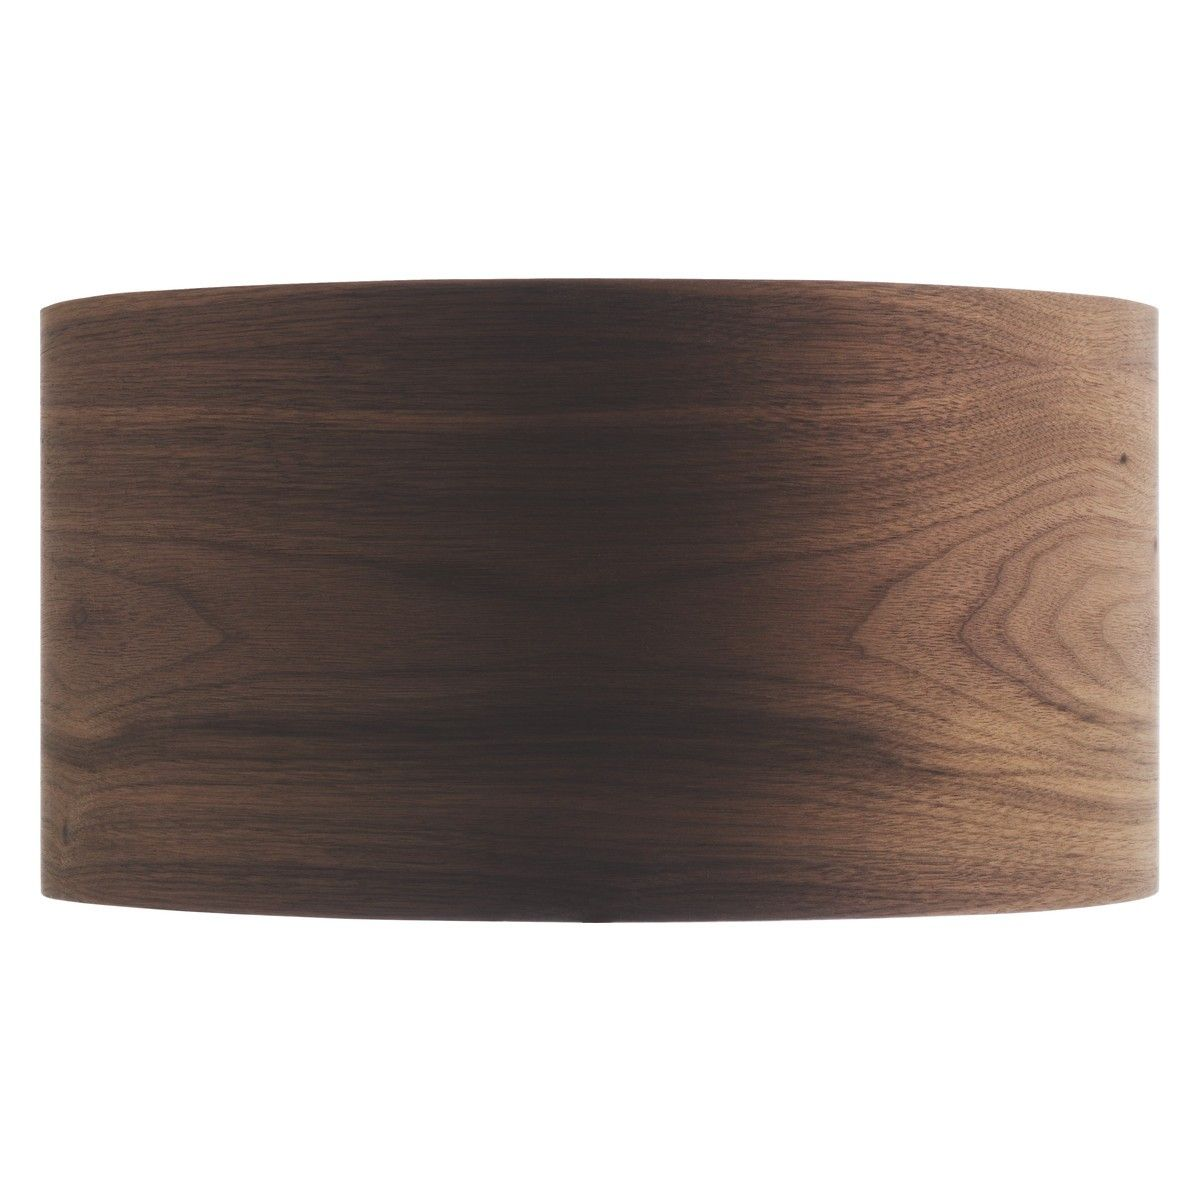 KAIN Walnut veneer drum lamp shade D35 x H18cm | Lamp ideas ...